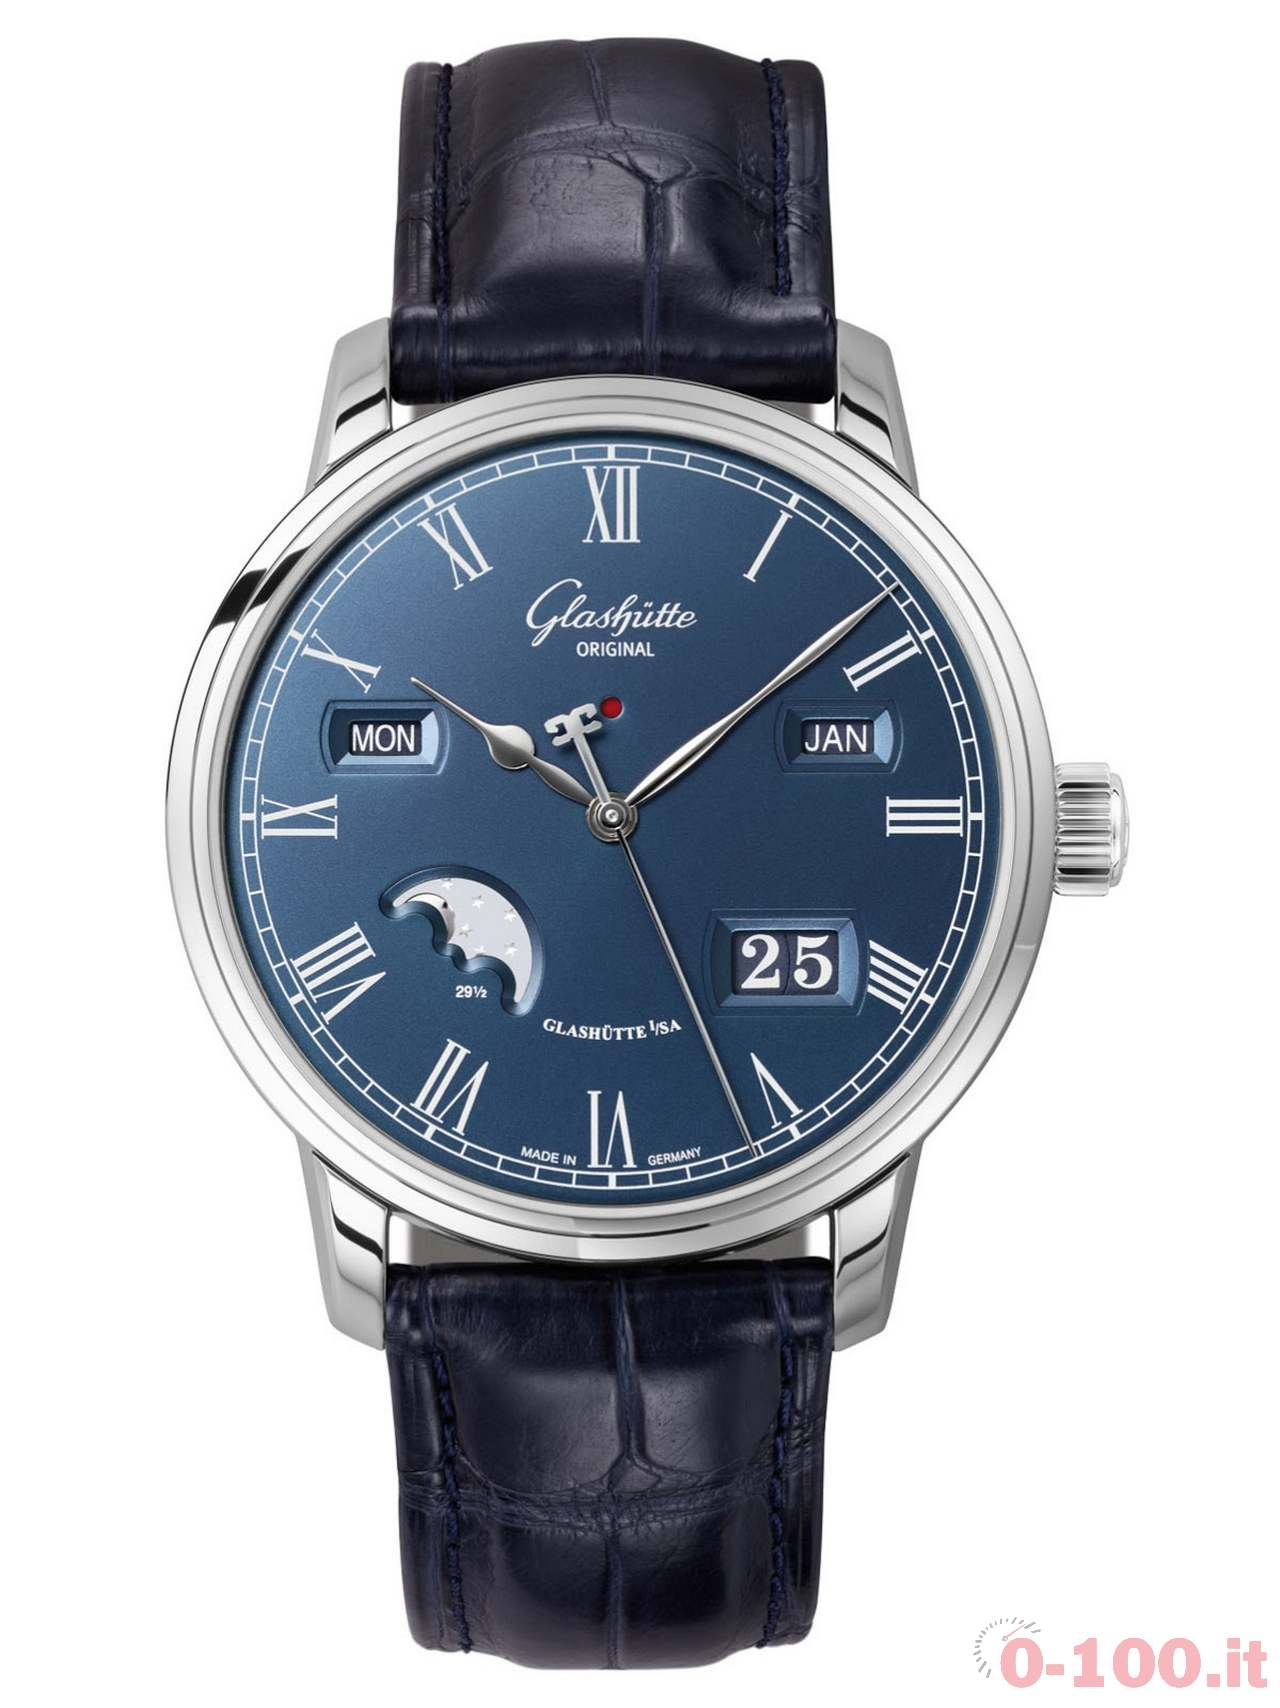 glashutte-original-senator-perpetual-calendar-blue-dial-boutique-edition-prezzo-price_0-1004